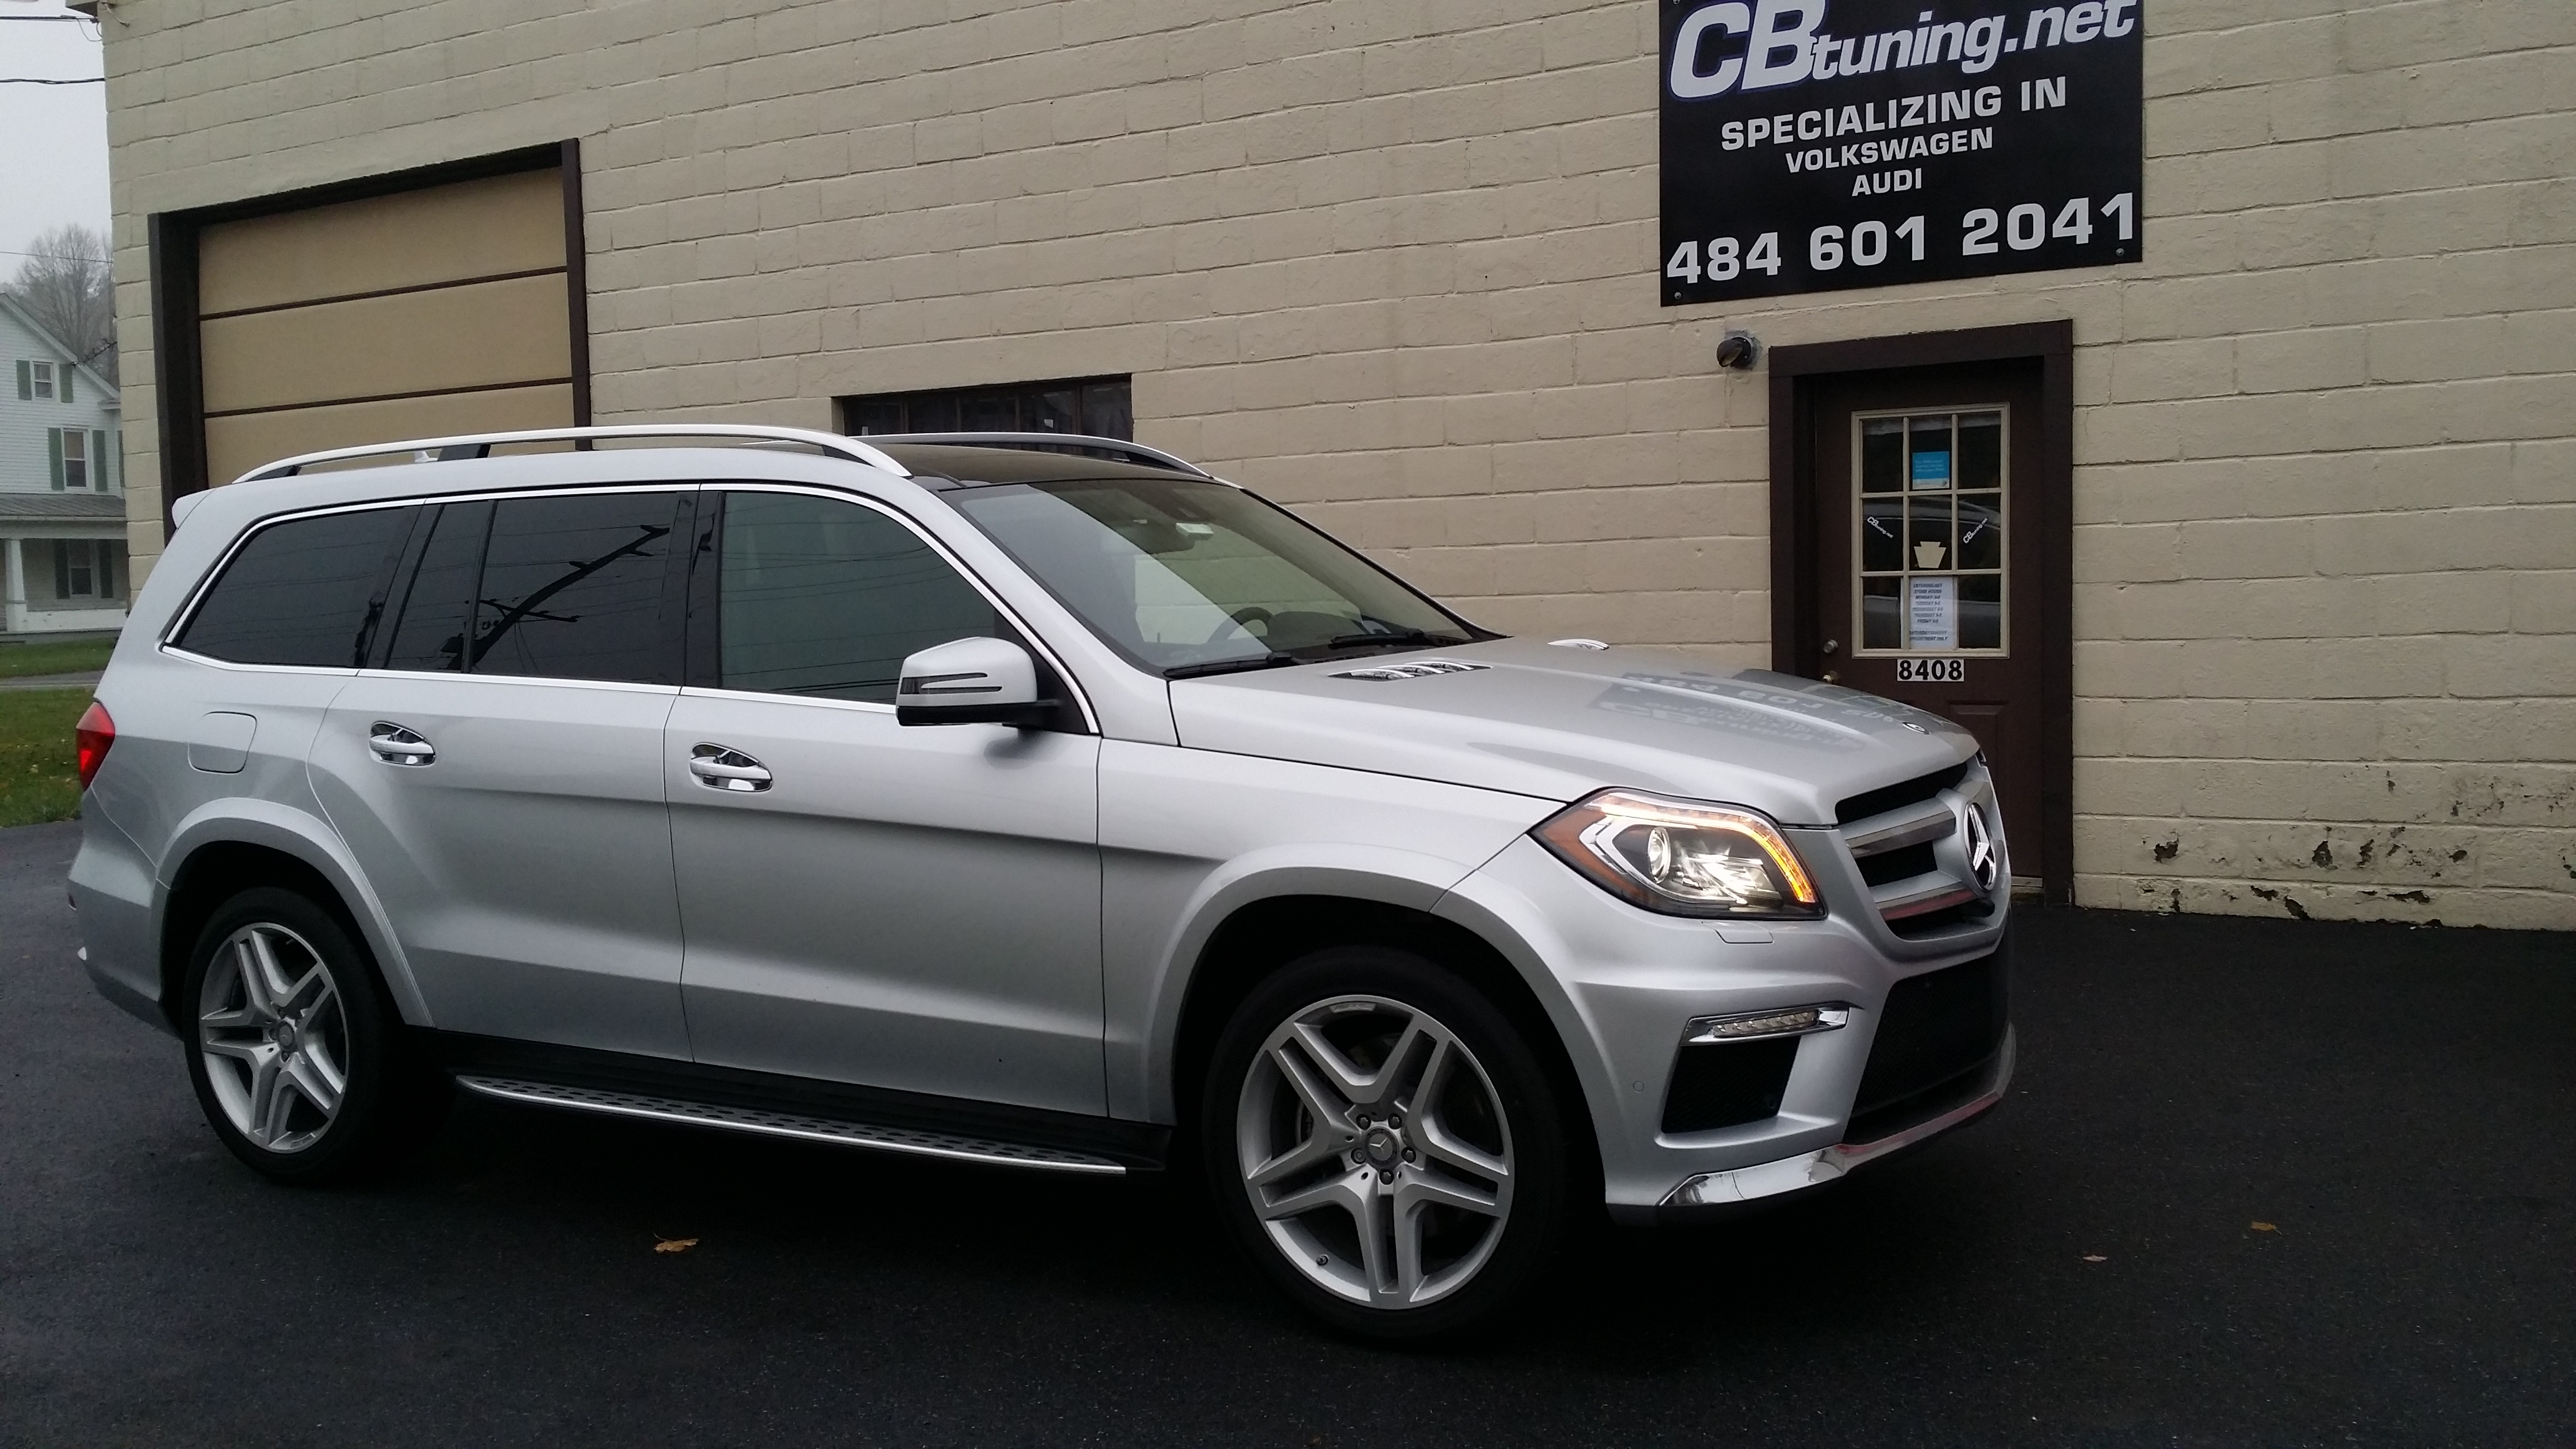 Cbtuning2015 mercedes benz gl550 cbtuning for 2015 mercedes benz gl550